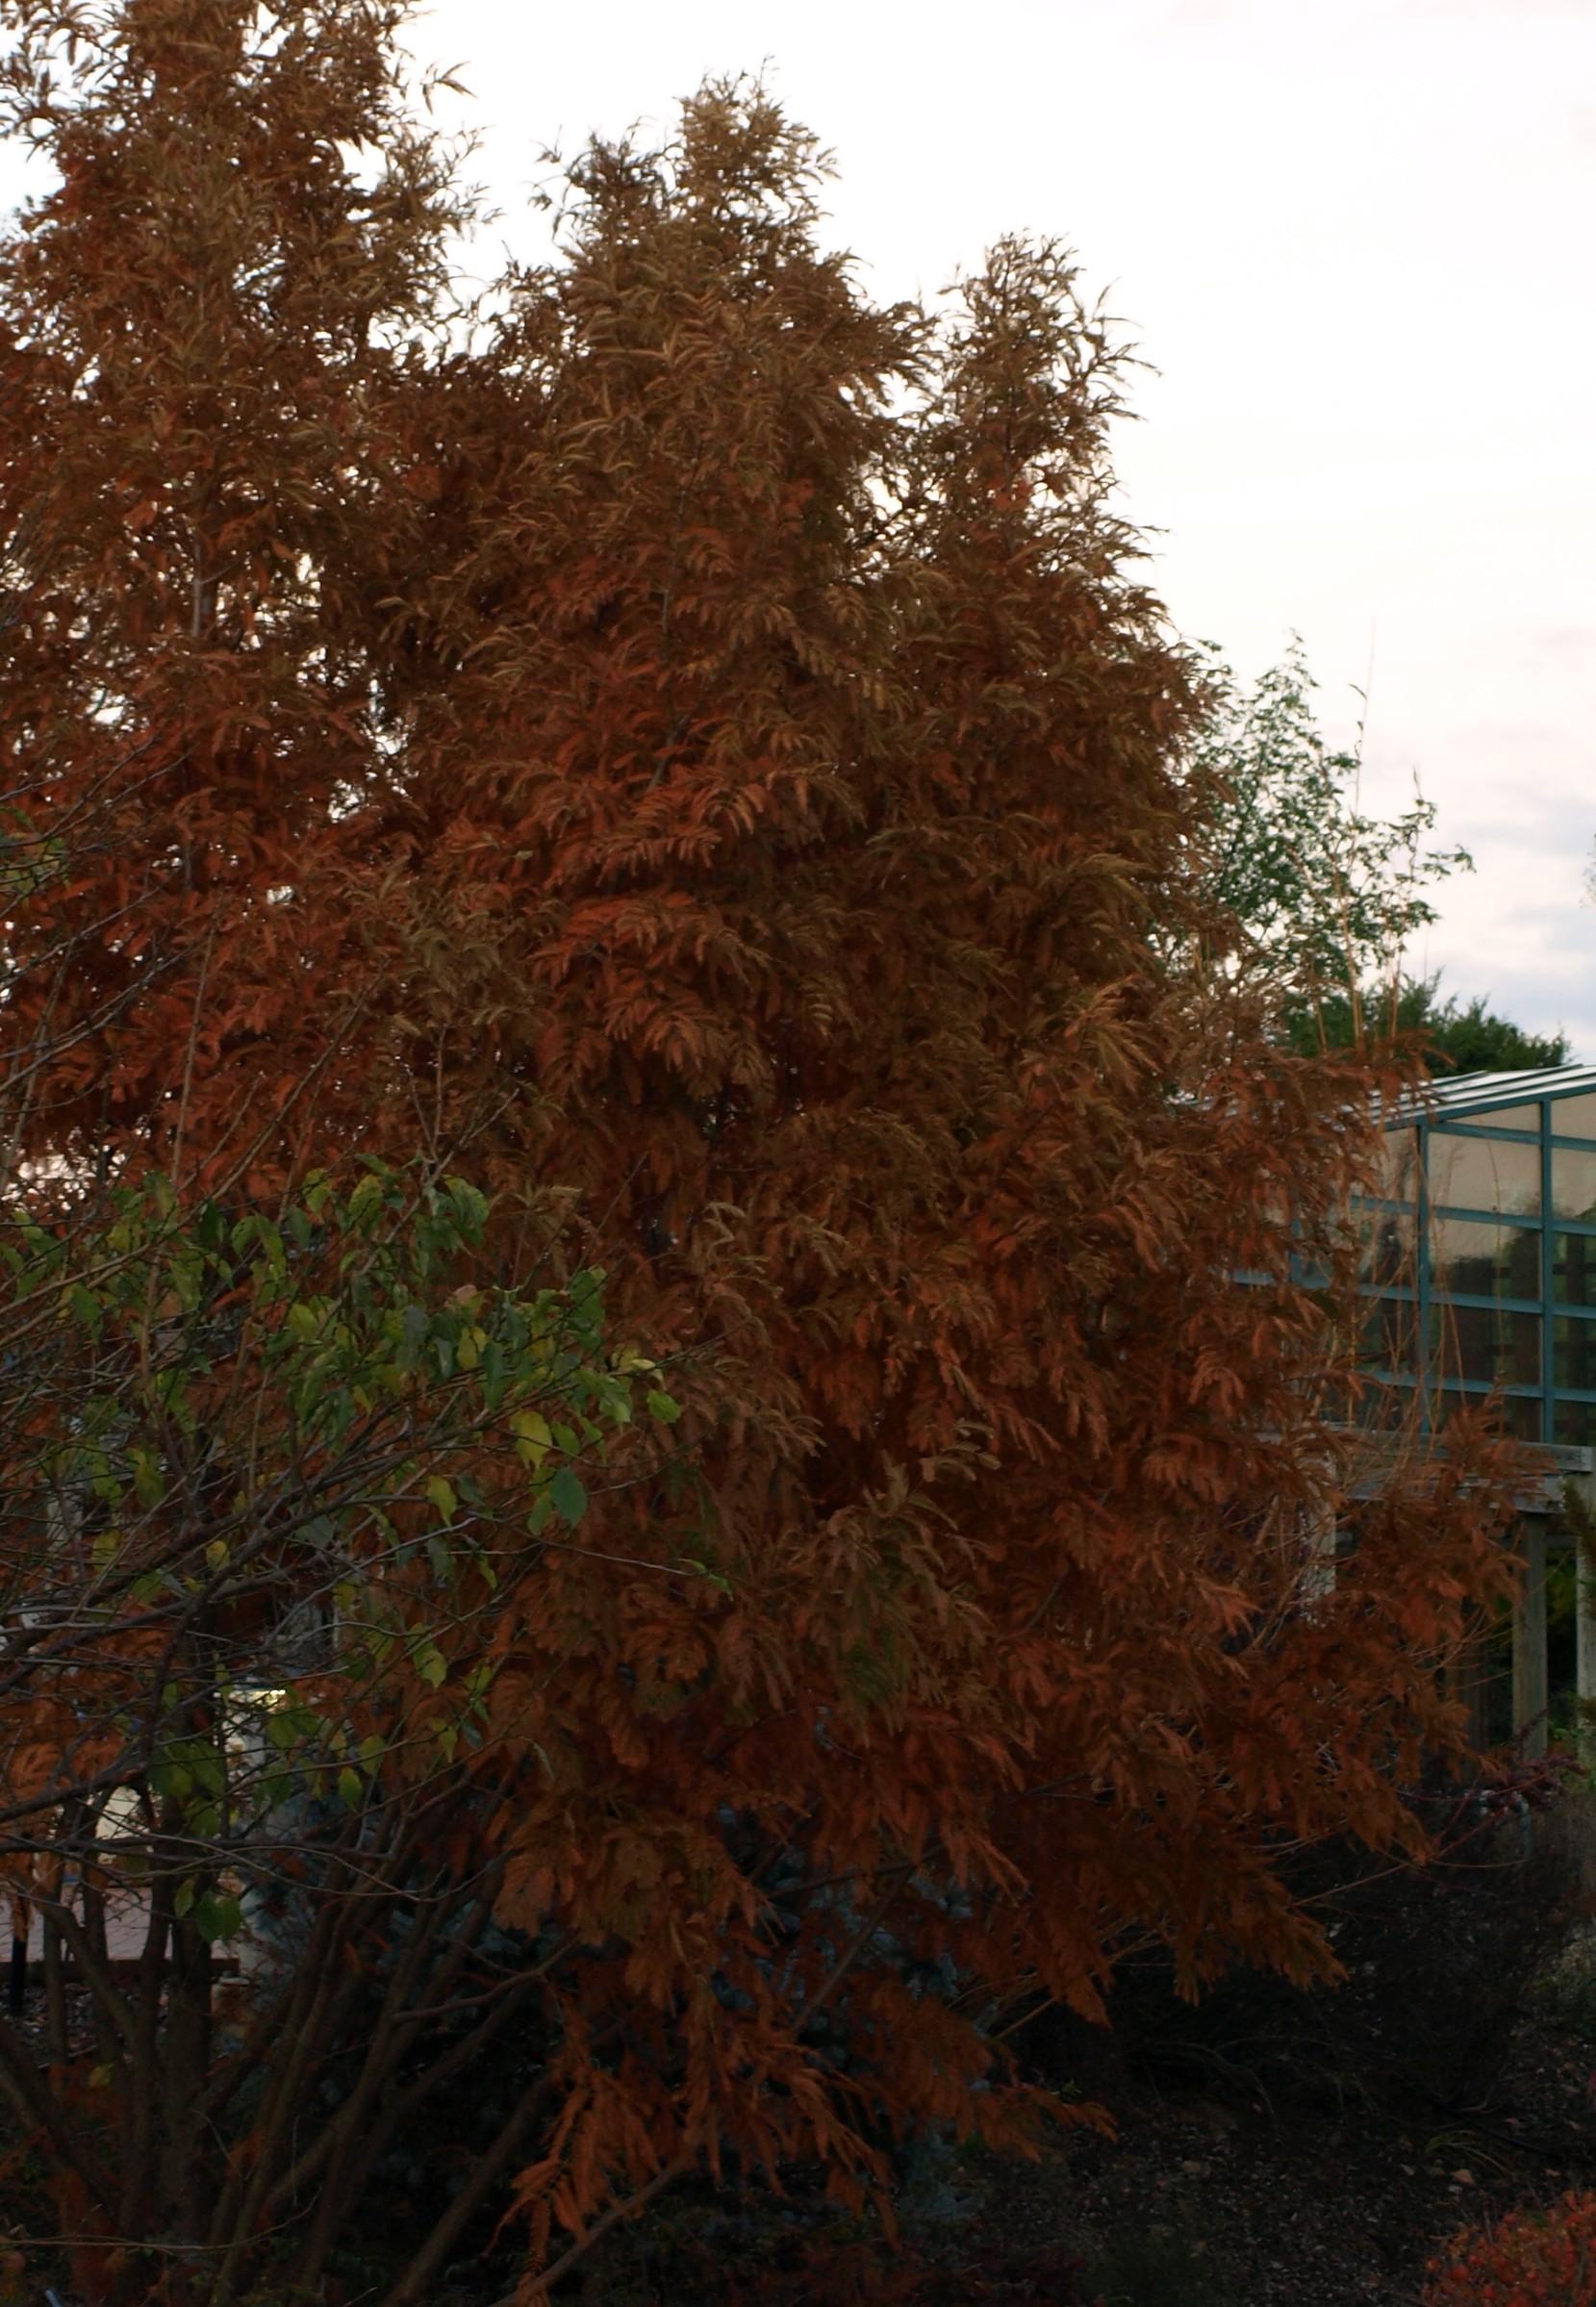 Fall color on this deciduous conifer can be spectacular.